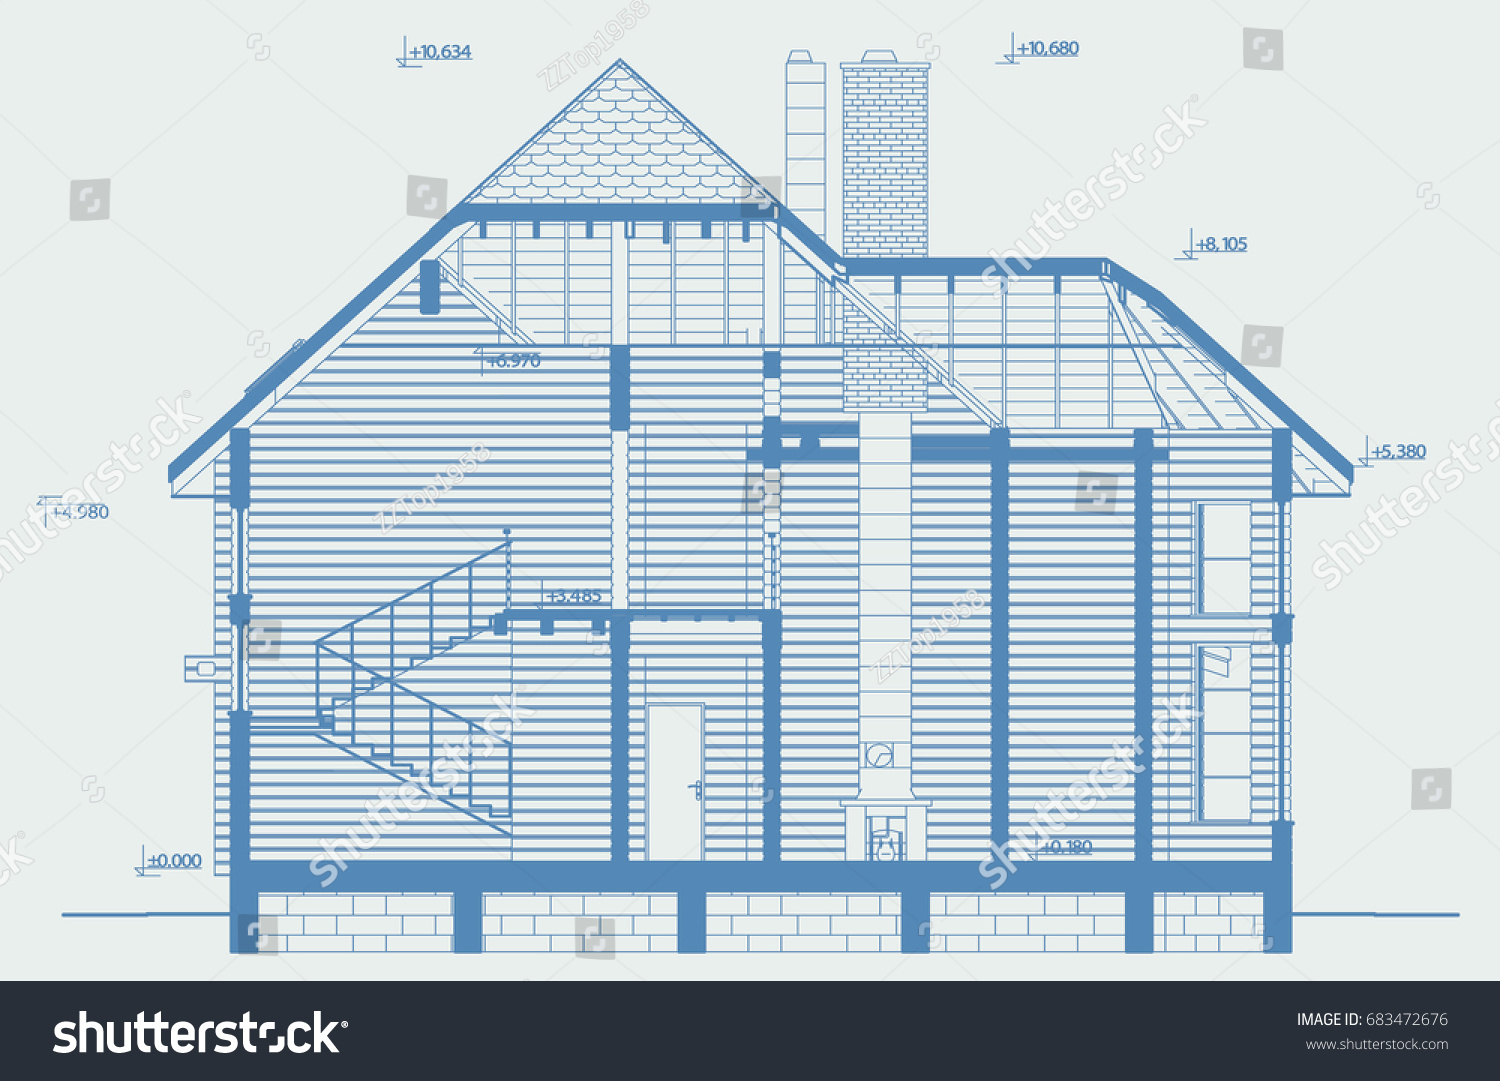 Blueprint architectural section residential individual wooden stock blueprint architectural section of residential individual wooden house building from glued beams3d malvernweather Image collections